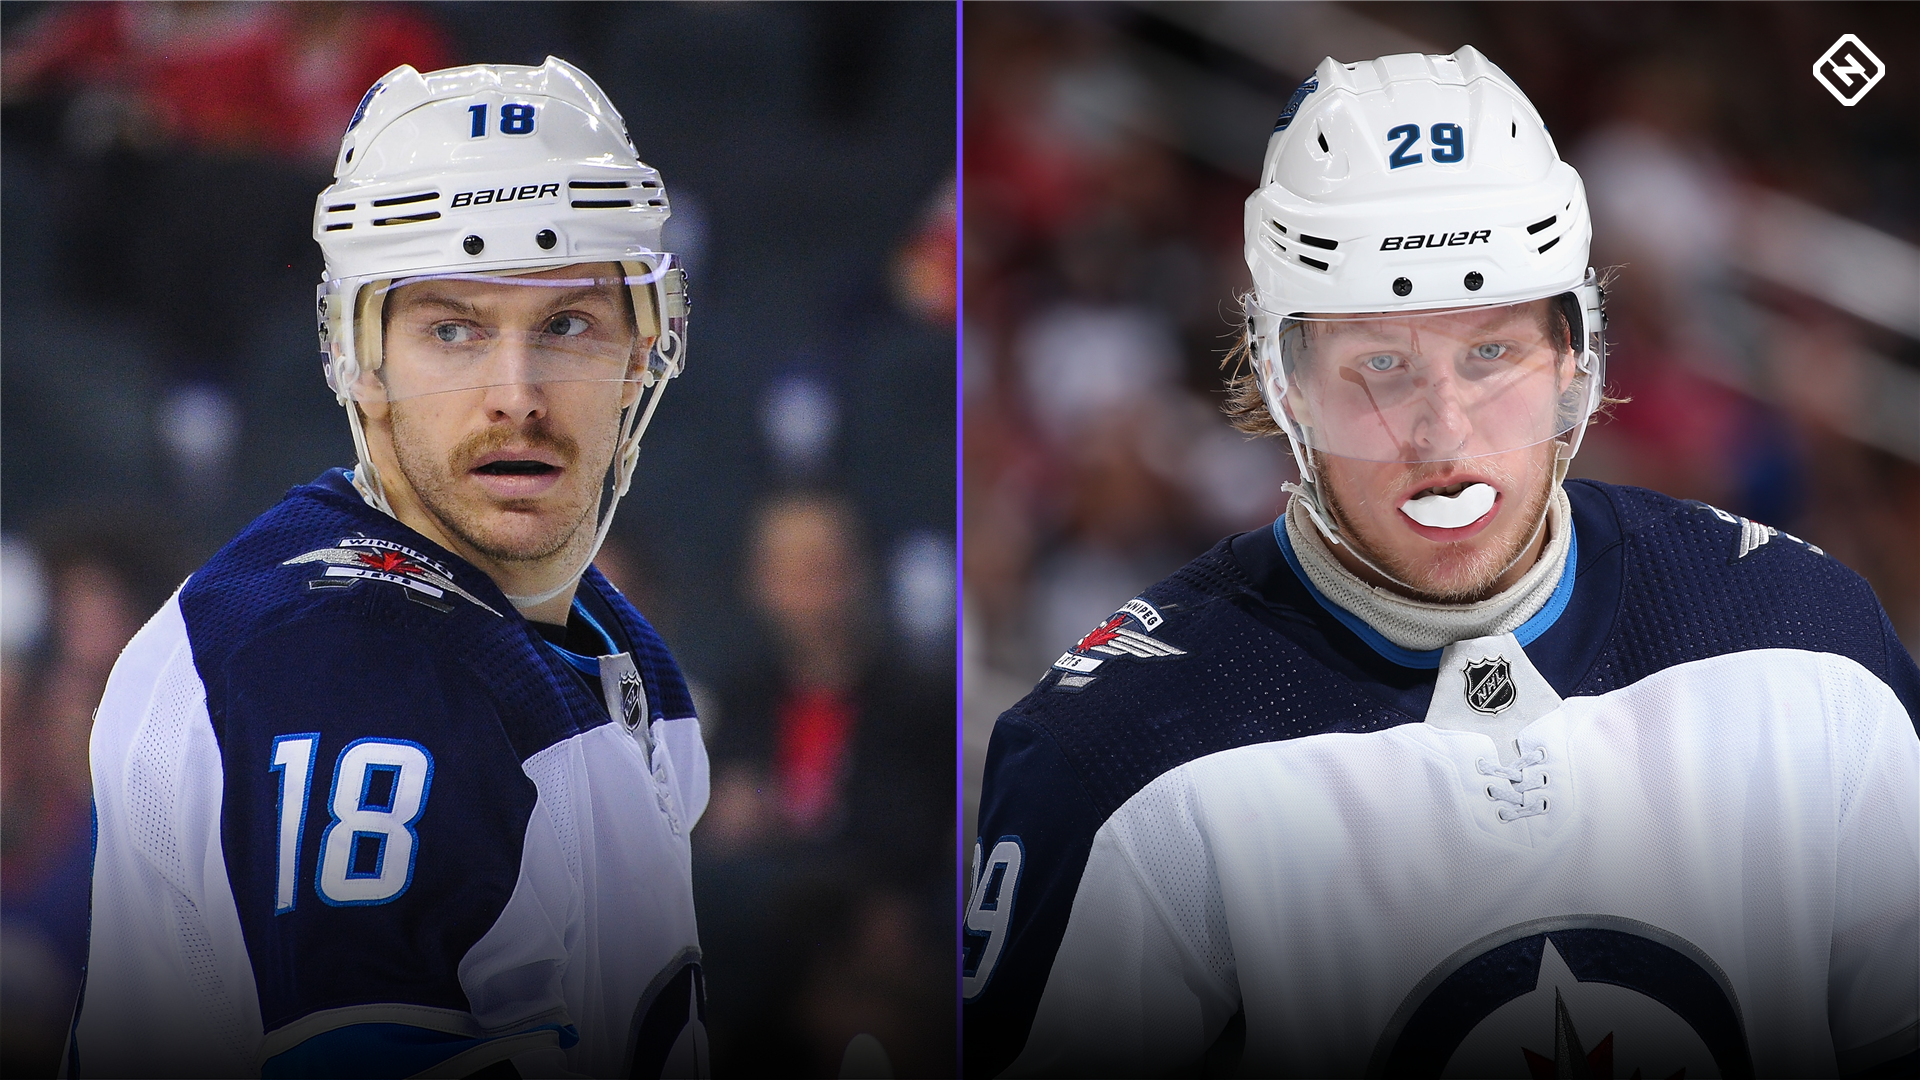 Jets' Bryan Little downplays Patrik Laine's linemate comments: 'Sometimes those things are misunderstood'